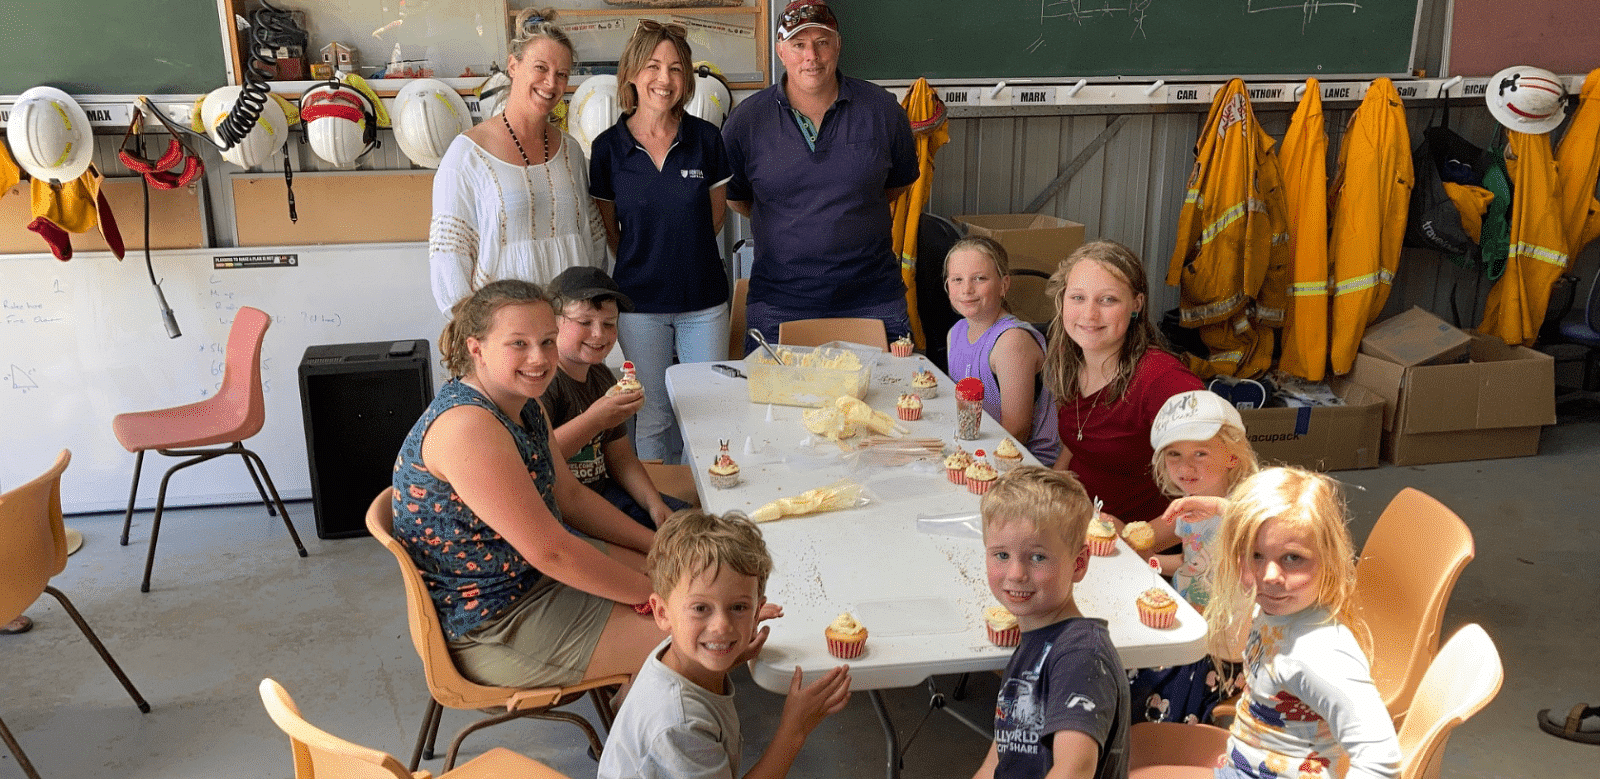 Cupcake decorating at Tathra - (from left) Kelly Eastwood (Eastwood's Deli & Cooking School), Hayley Reynolds (Fortem Australia) and Adam Wiggins (Tathra RFS Captain) with their cupcake decorating champions.